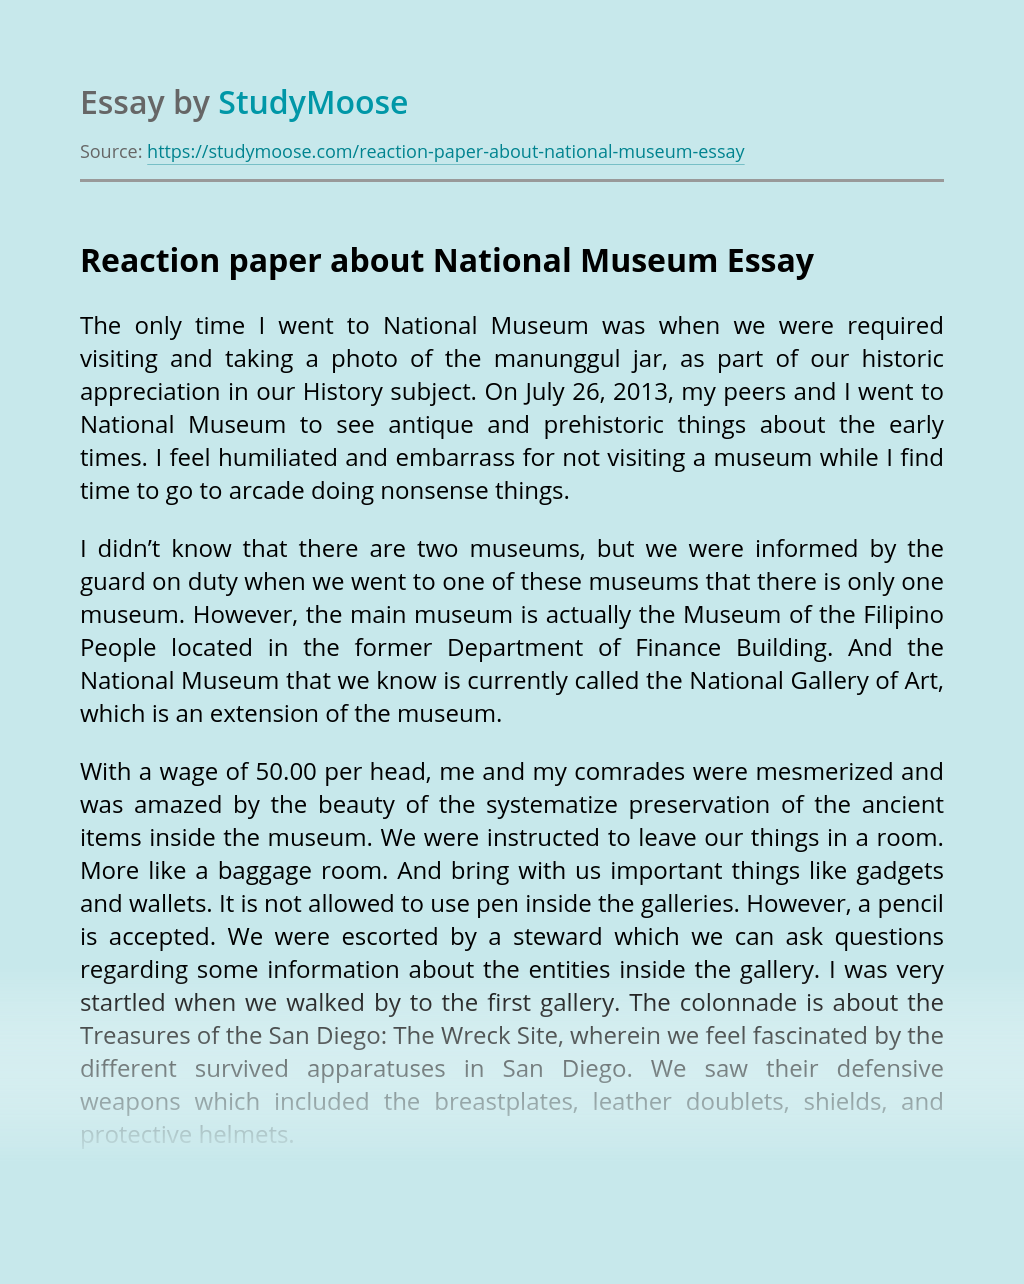 Reaction paper about National Museum